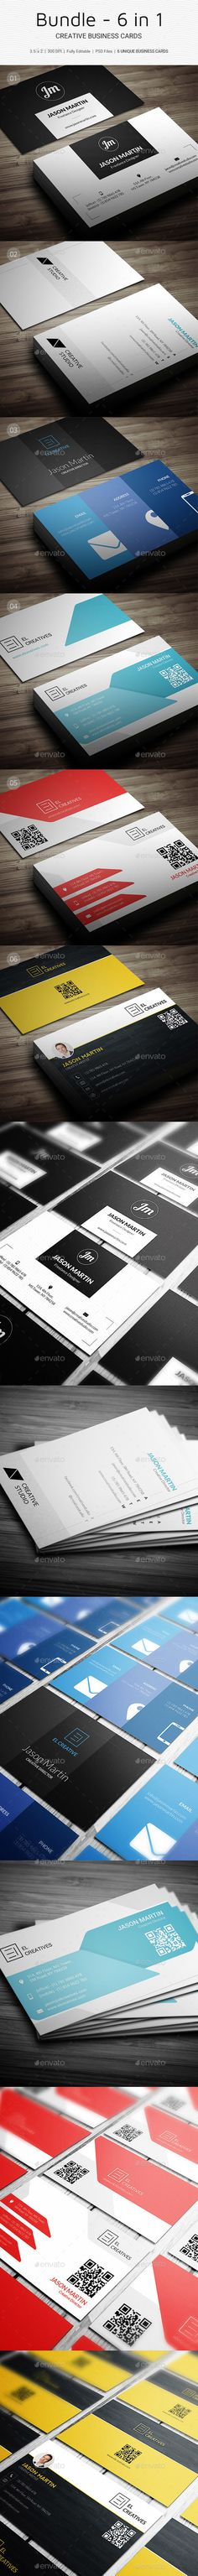 Bundle - 6 in 1 - Pro Minimal Business Cards Templates PSD